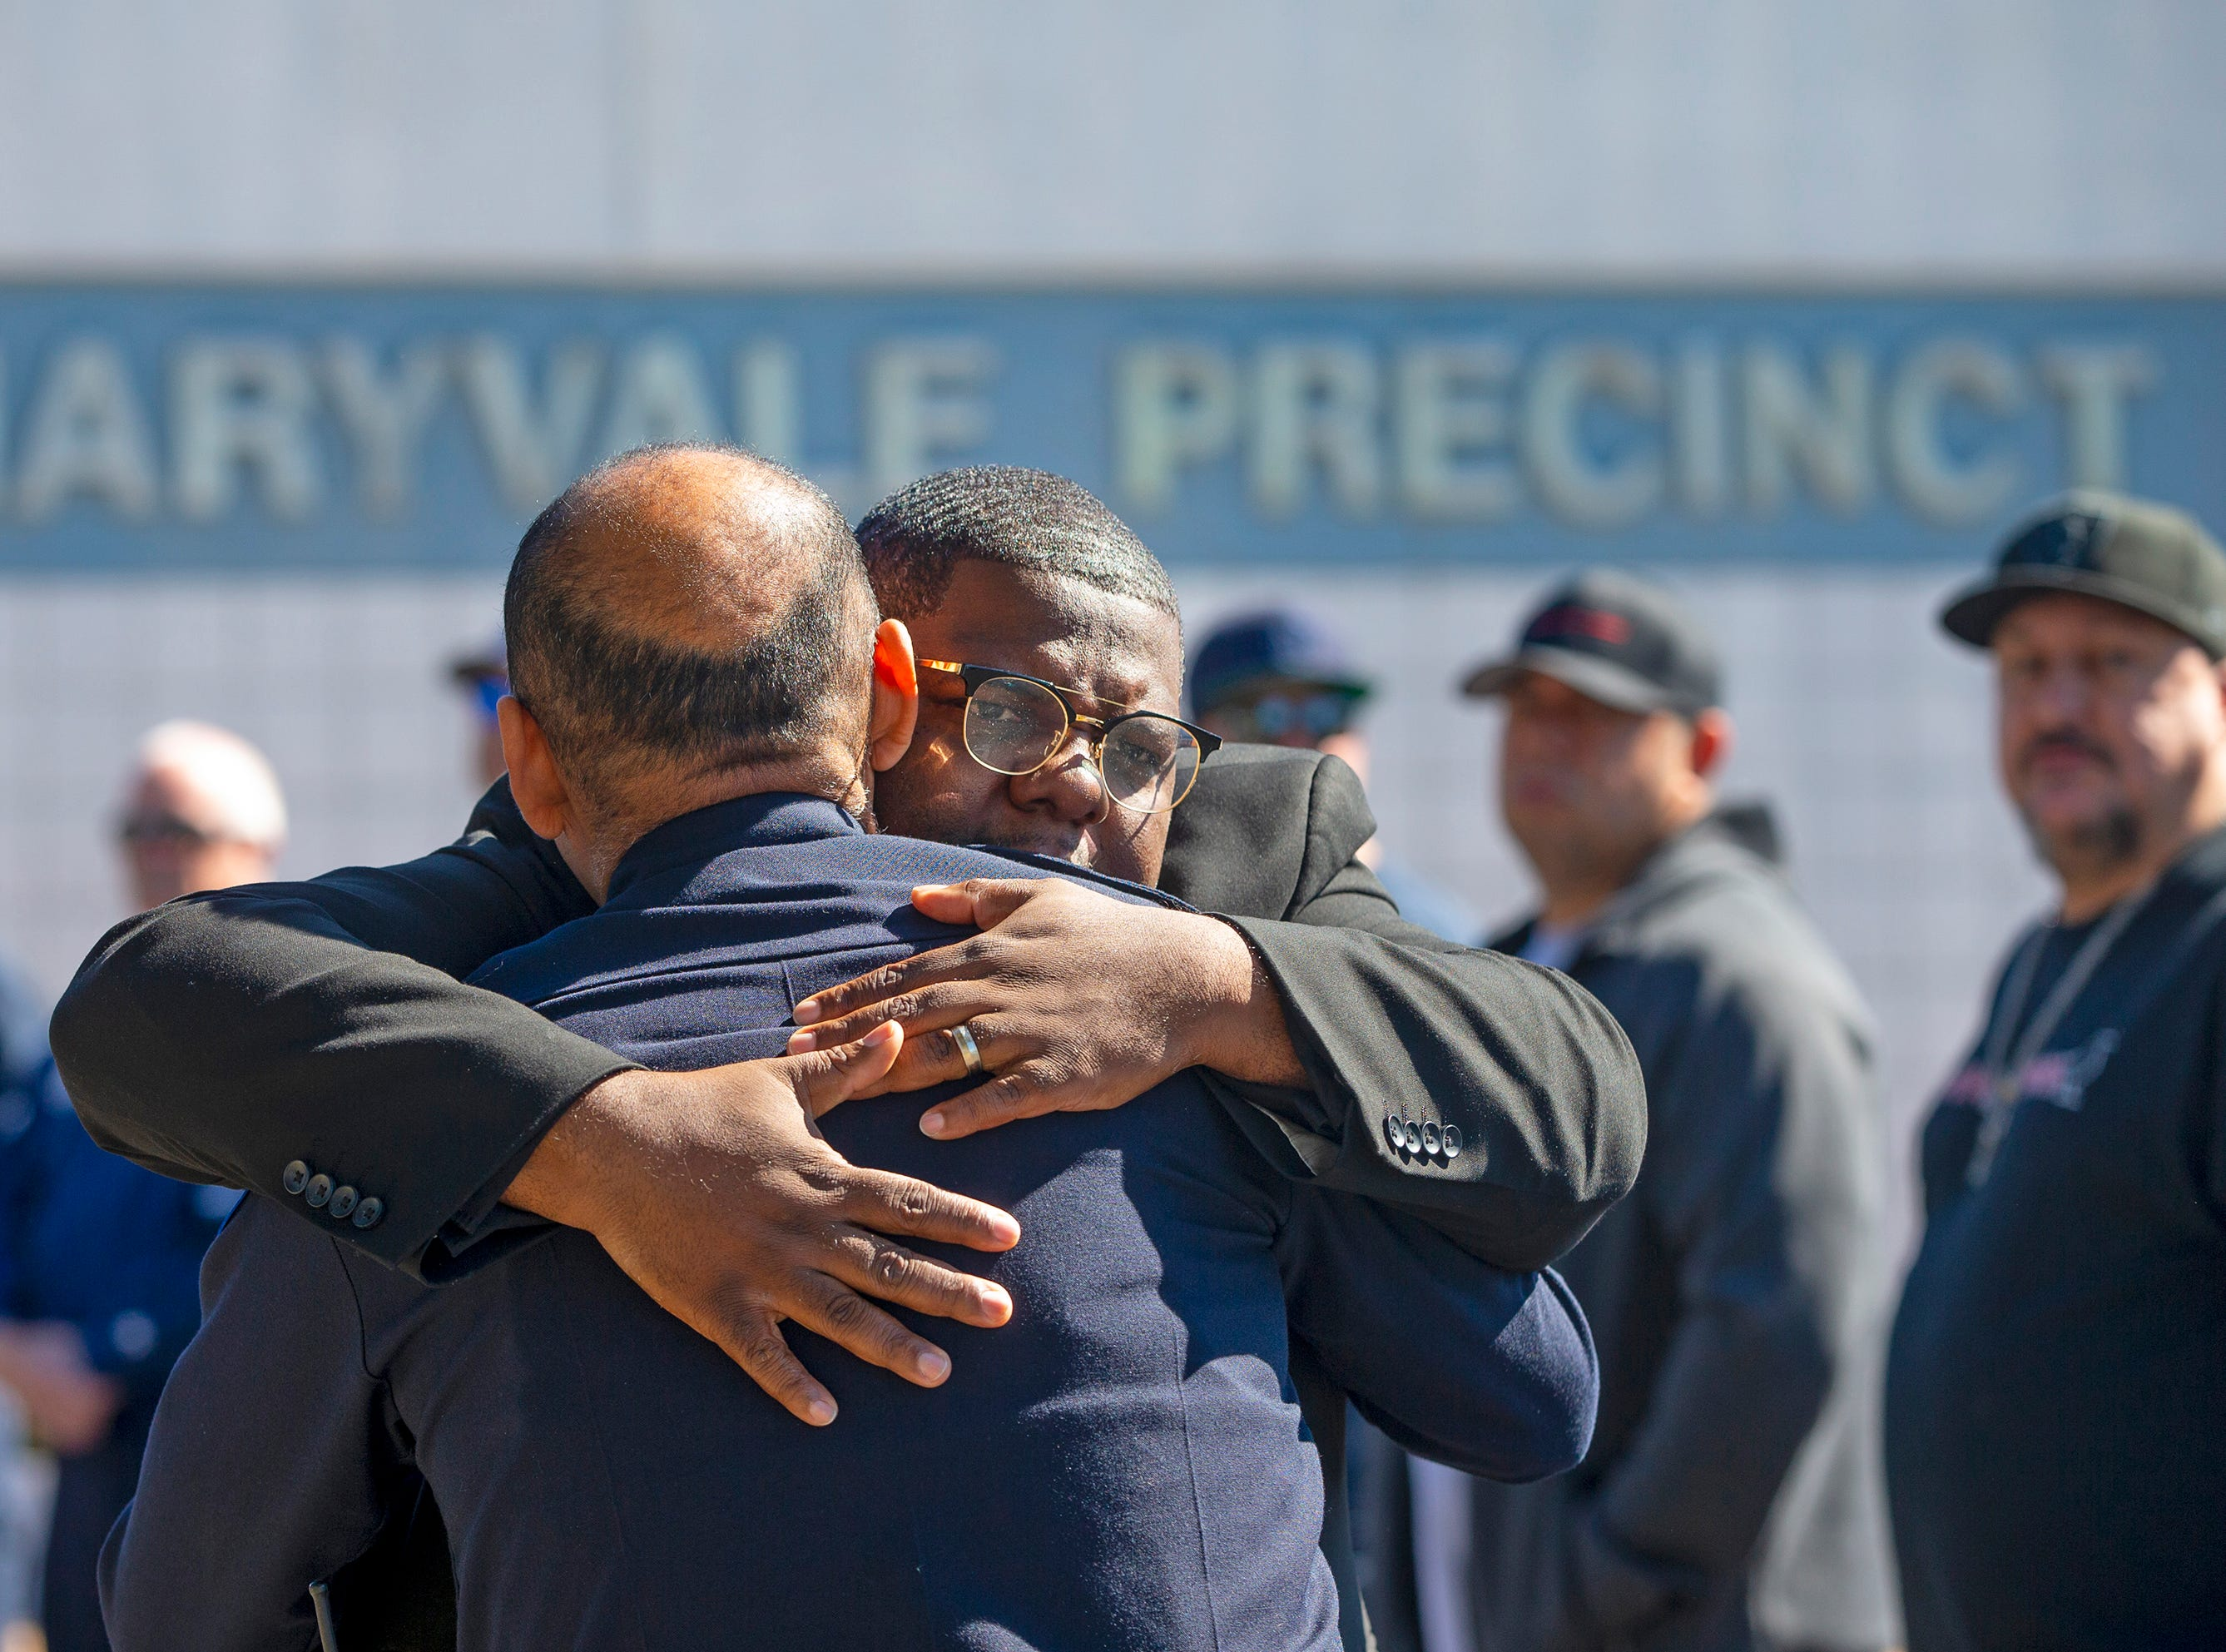 The Rev. Reginald D. Walton gives a hug to Lt. Mark Tovar Sr. March 22, 2019, during a prayer service outside Phoenix Police Maryvale Precinct for Officer Paul Rutherford, who was killed in a crash March 21.